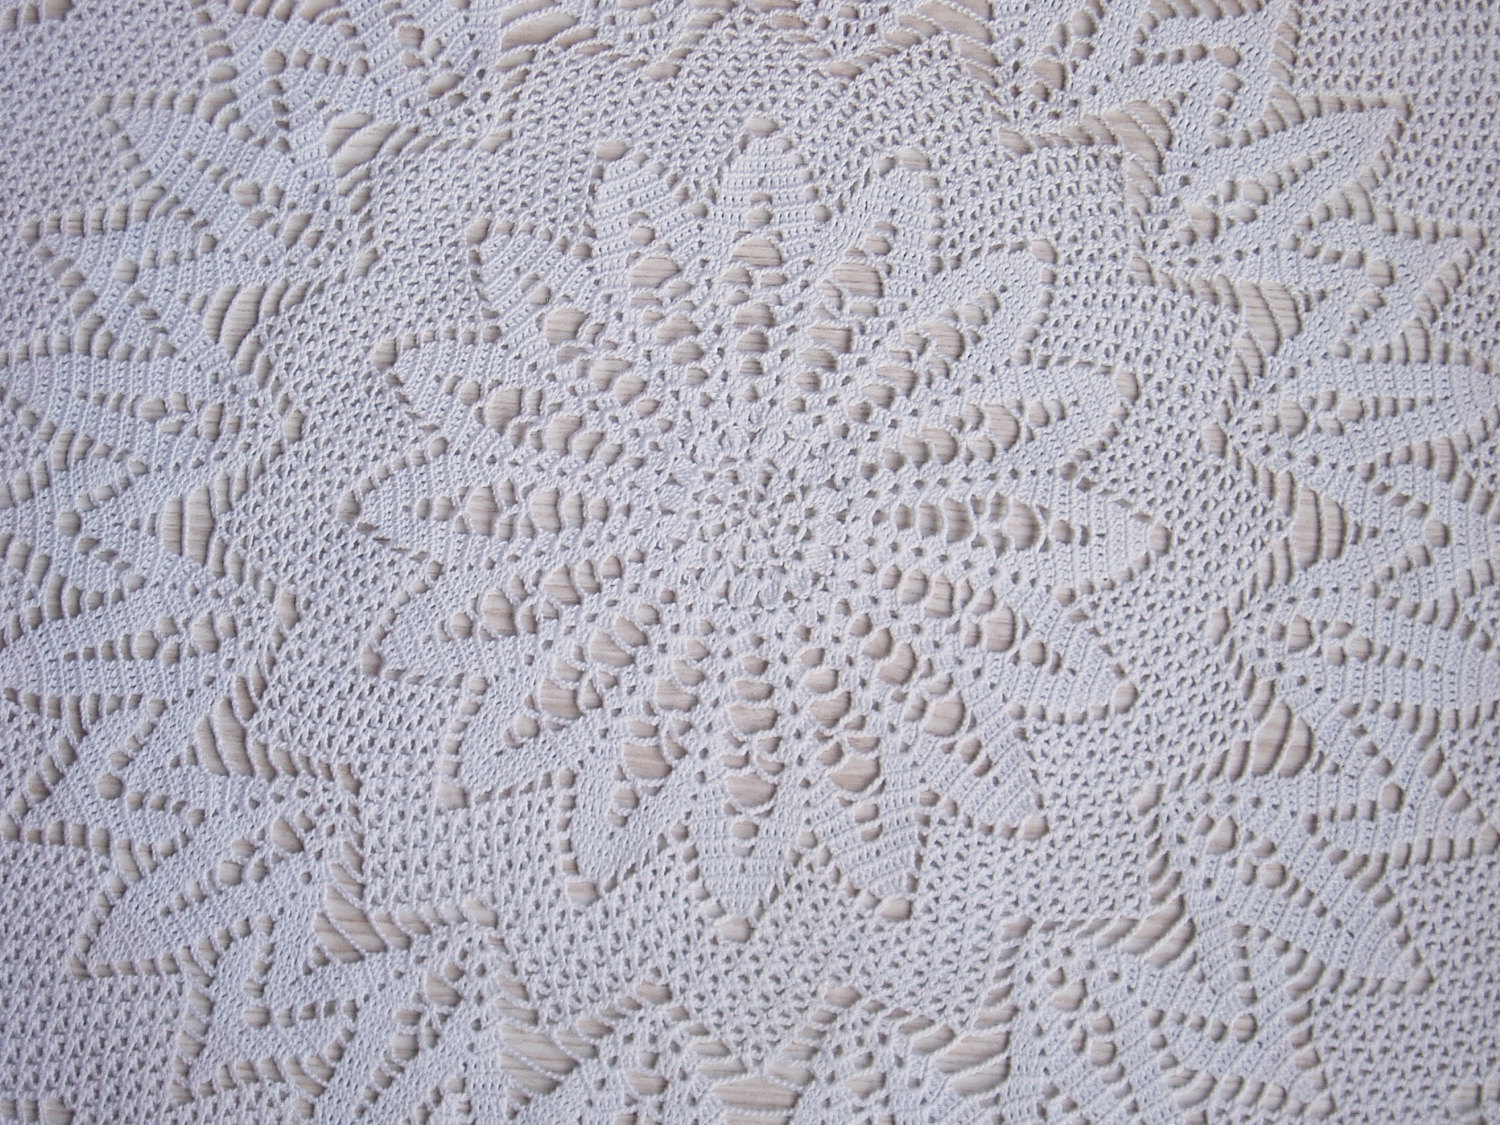 Lace crochet tablecloth handmade white round cover crochet white olympus digital camera lace crochet tablecloth bankloansurffo Gallery